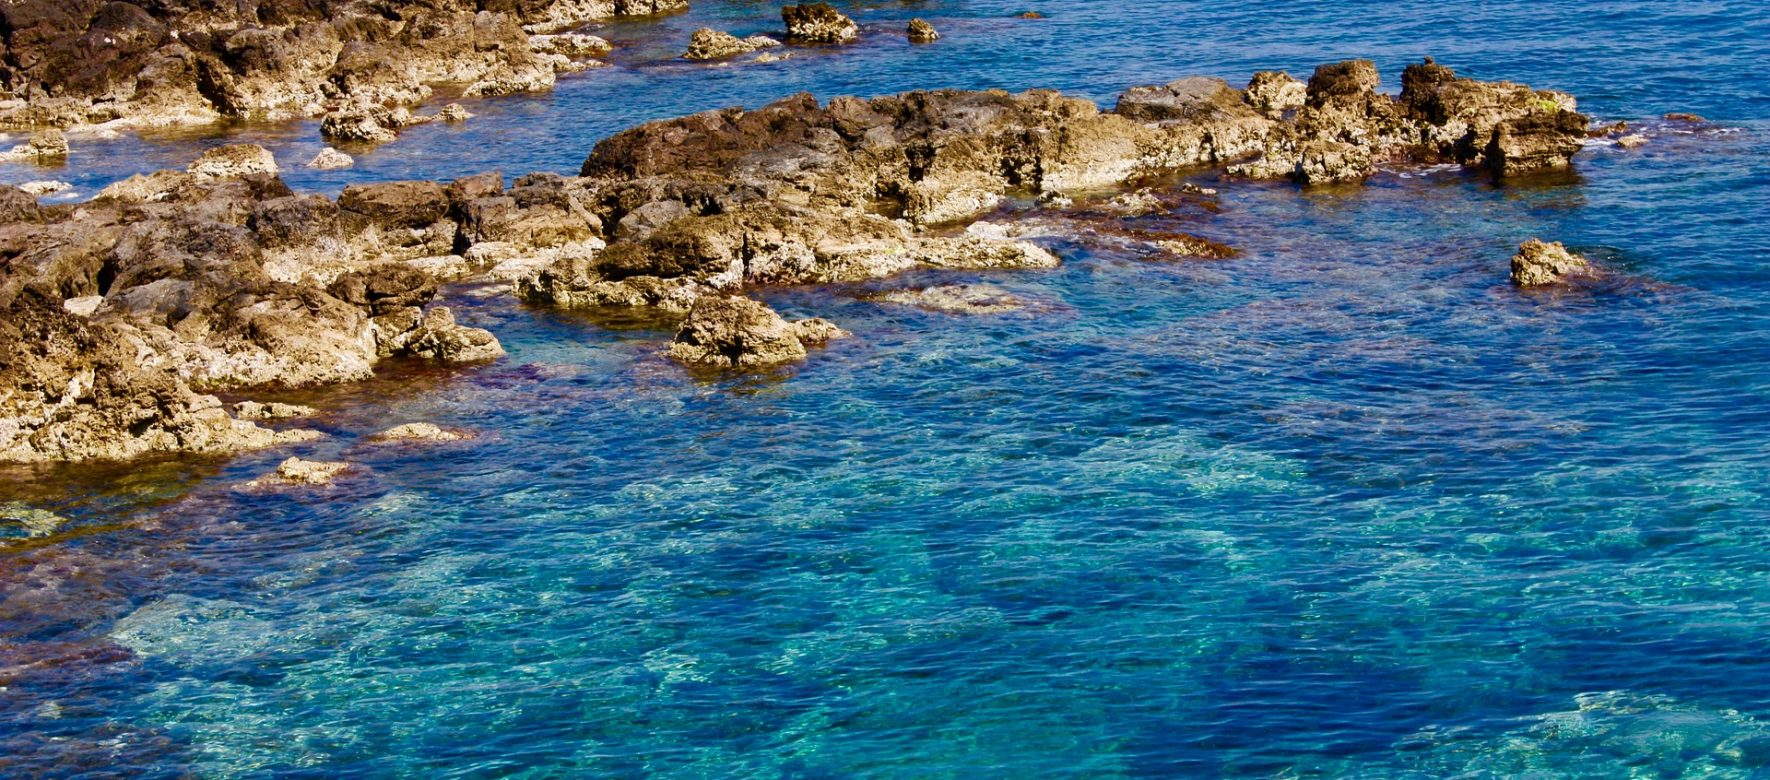 The Mediterranean Sea is threatened by mass tourism, according to the WWF 2